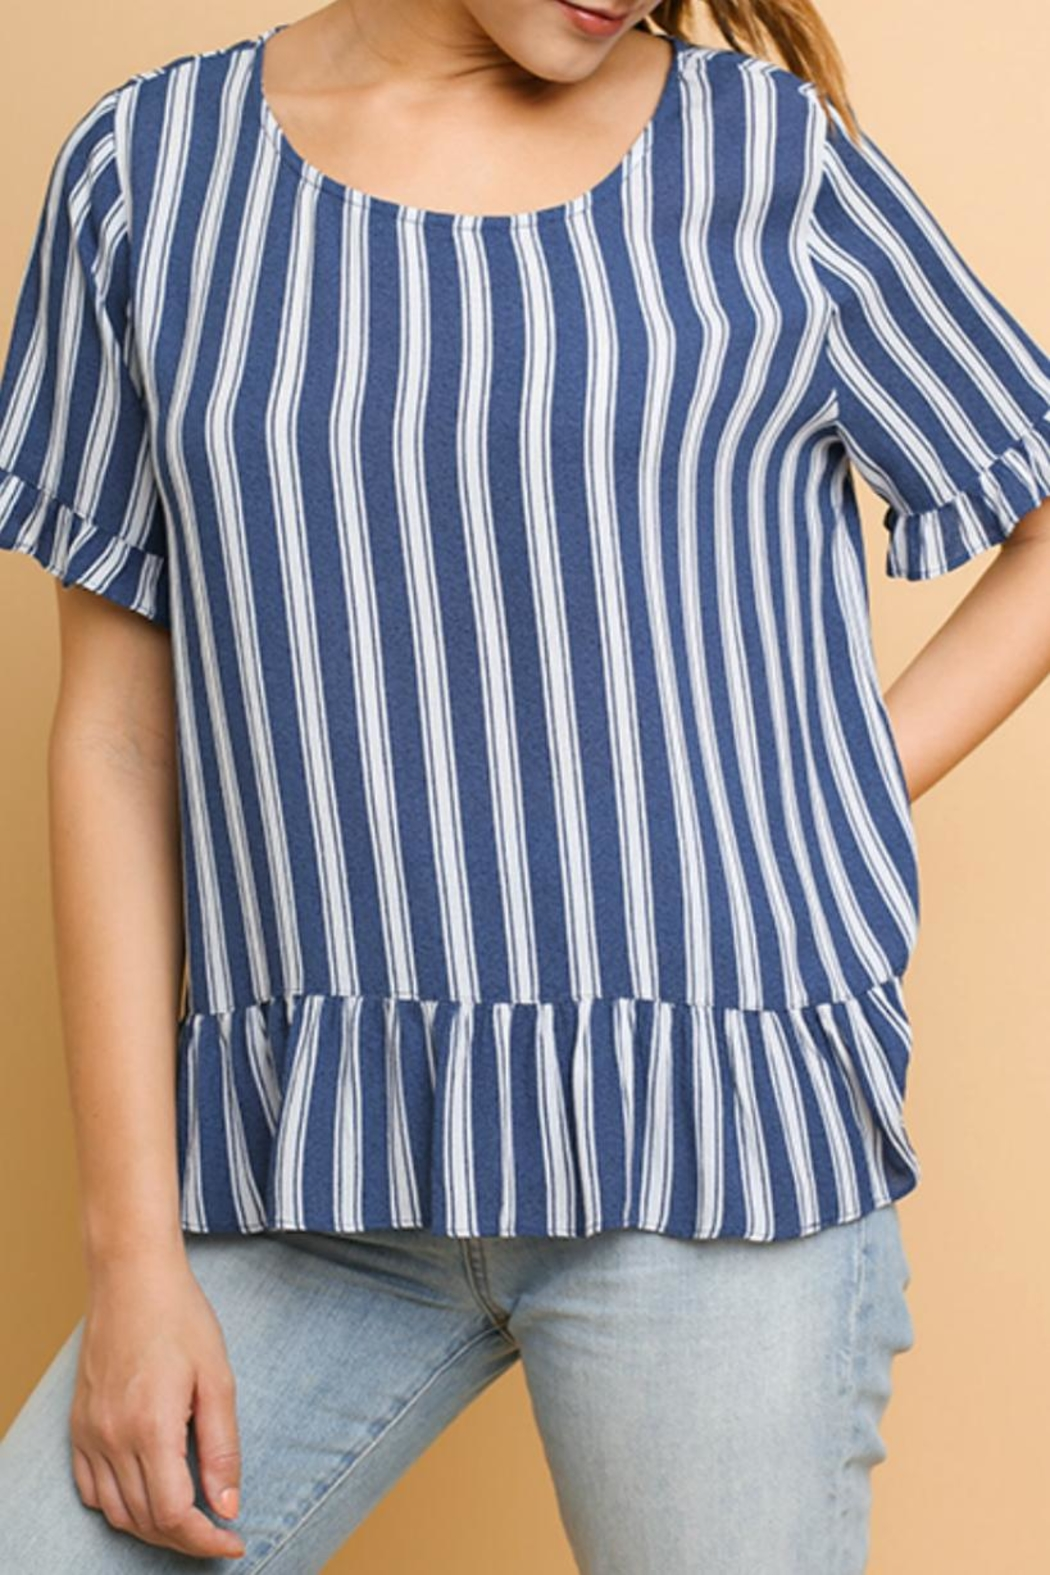 Umgee USA Striped Ruffled Top - Main Image